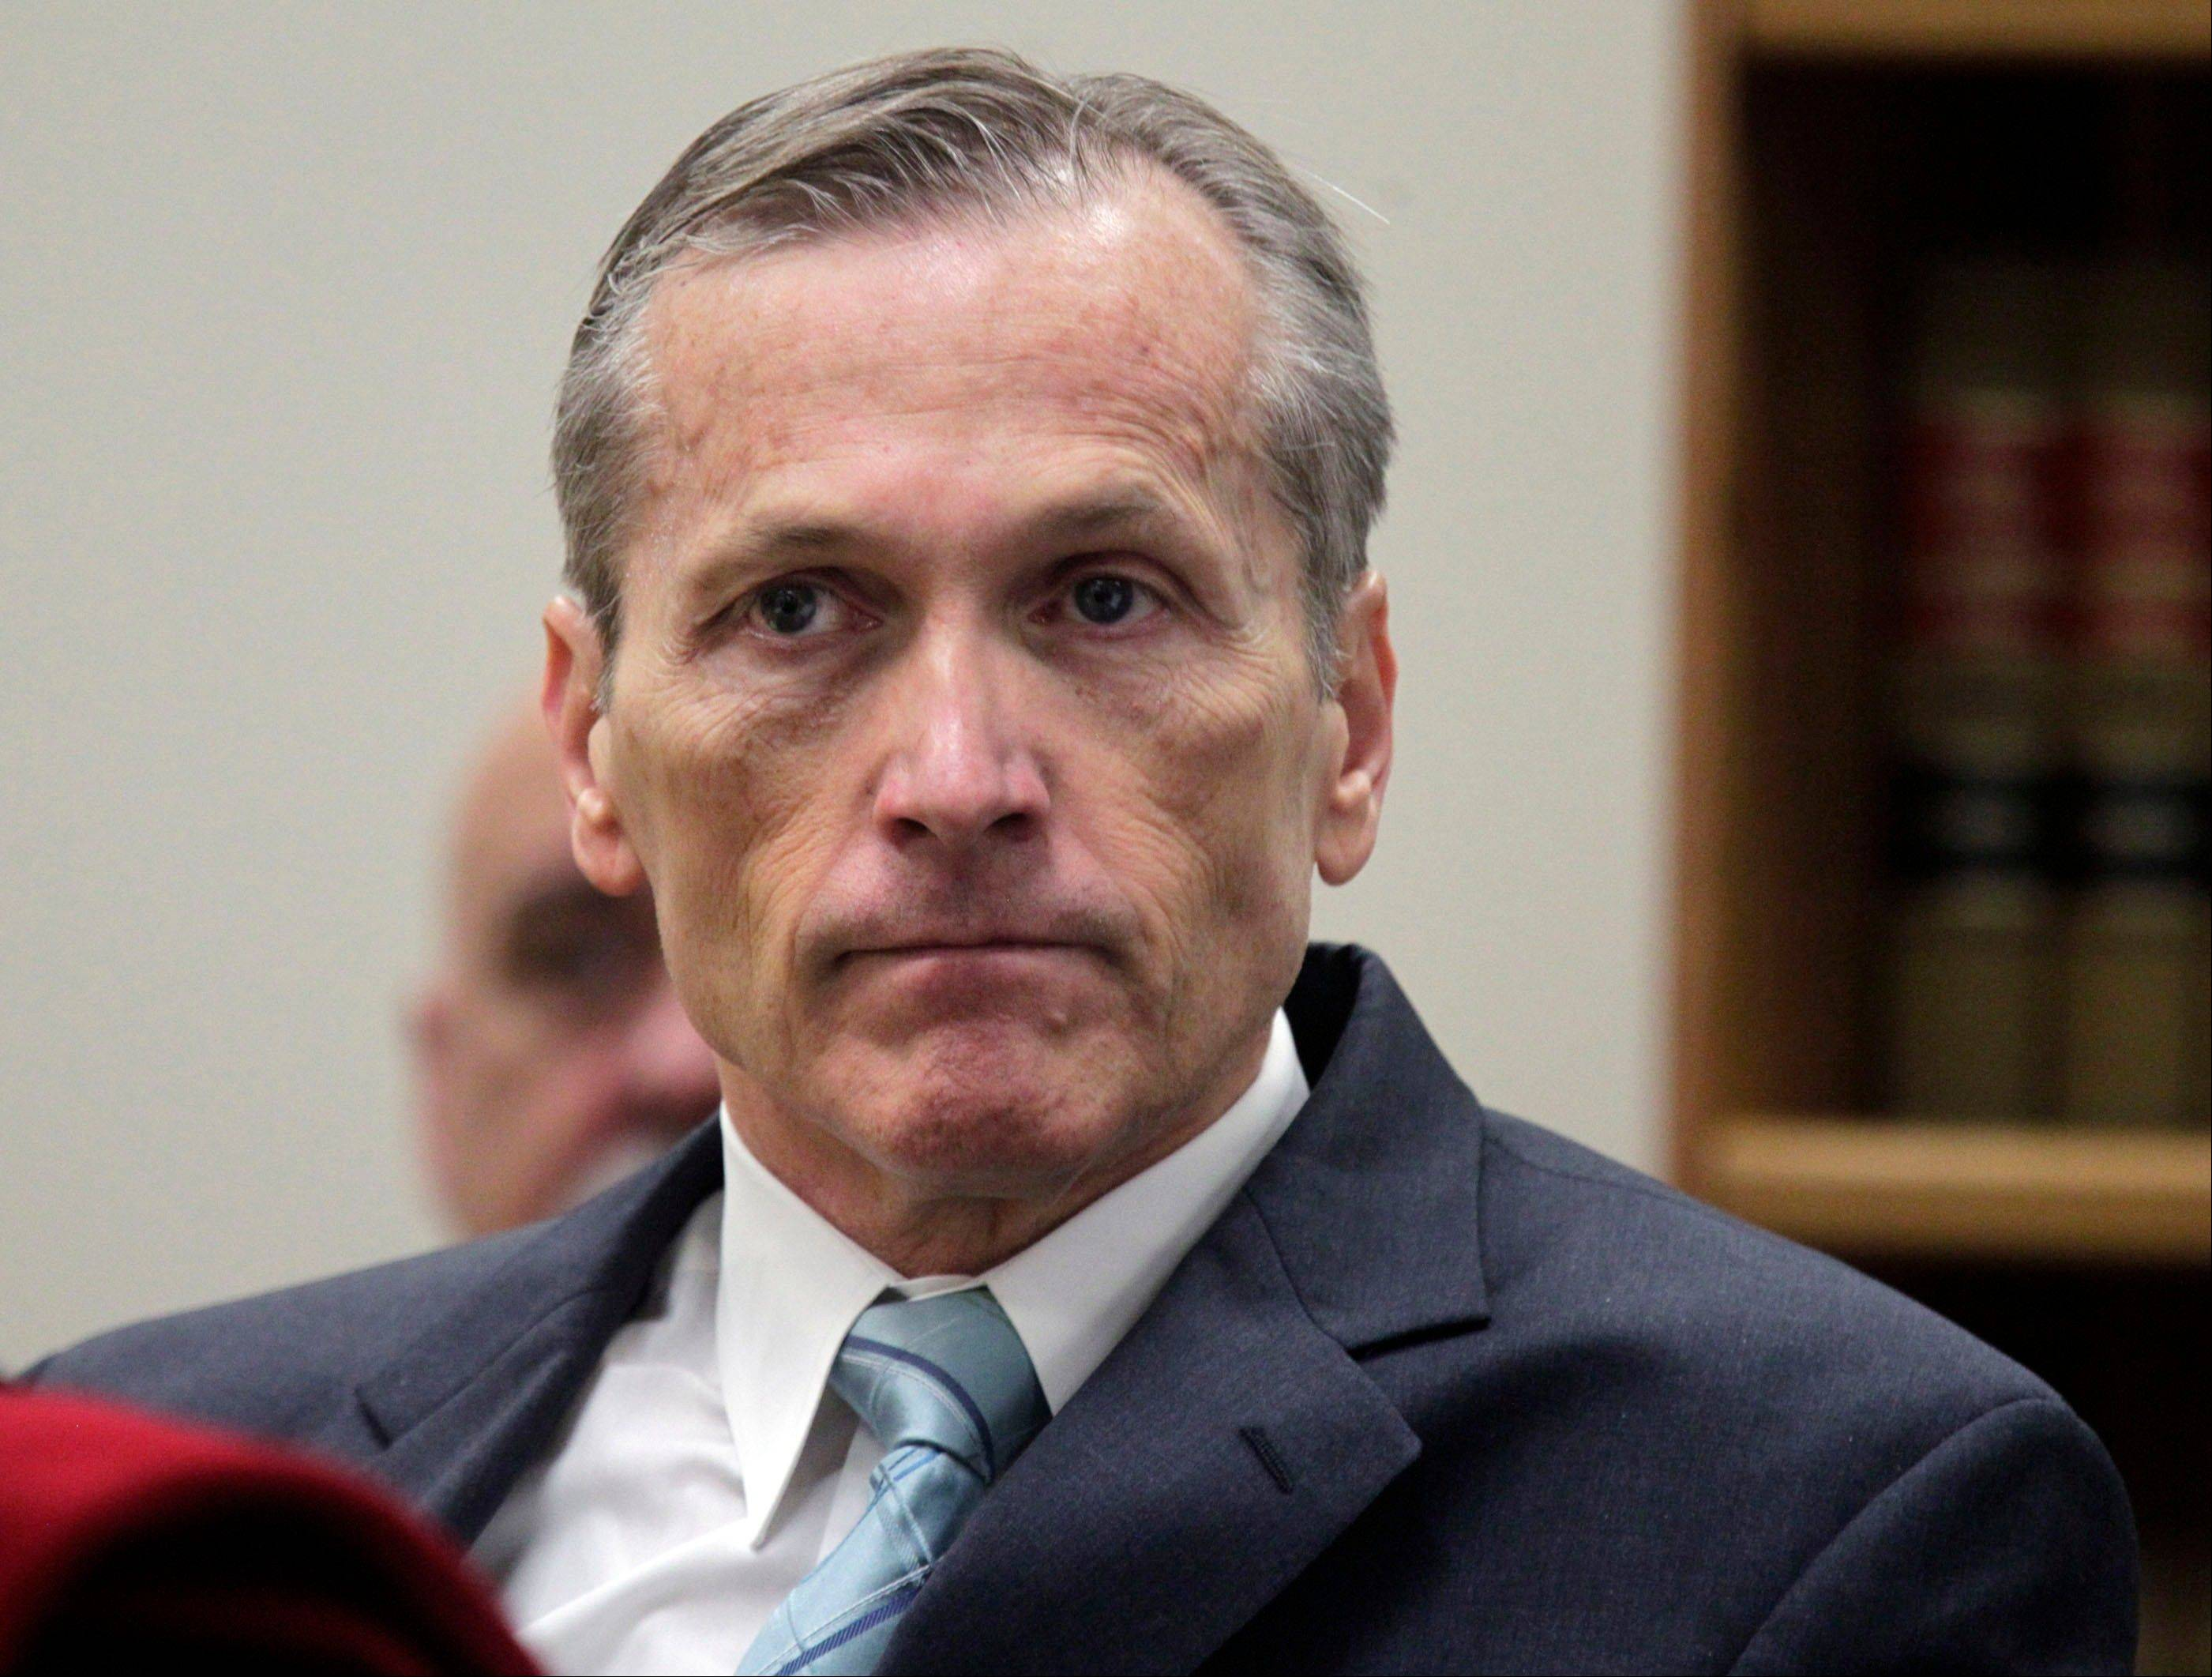 Martin MacNeill, a former doctor, is charged with murder in the 2007 death of his wife. MacNeill, 57, was charged in August 2012, nearly five years after his former beauty queen wife, Michele MacNeill, was found in the bathtub at the couple's Pleasant Grove home, about 35 miles south of Salt Lake City. Prosecutors said they will try to prove that MacNeill got a plastic surgeon to prescribe a powerful set of neurological drugs for her recovery that left her comatose in the bathtub.